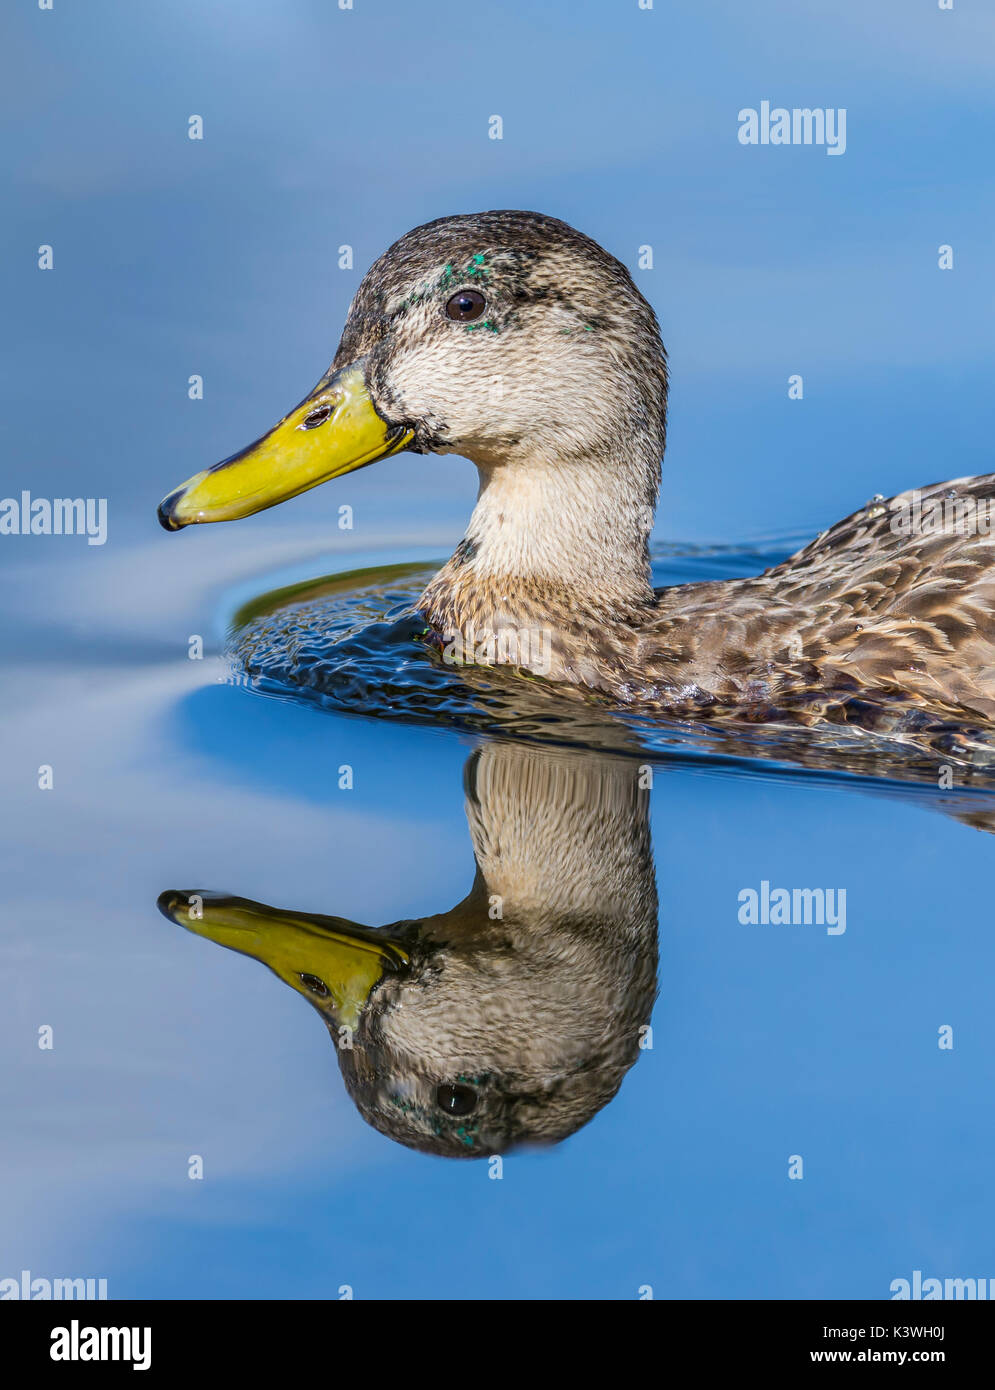 Female Mallard duck (Anas platyrhynchos) head and neck portrait, swimming in water with a perfect reflection, in the UK. - Stock Image